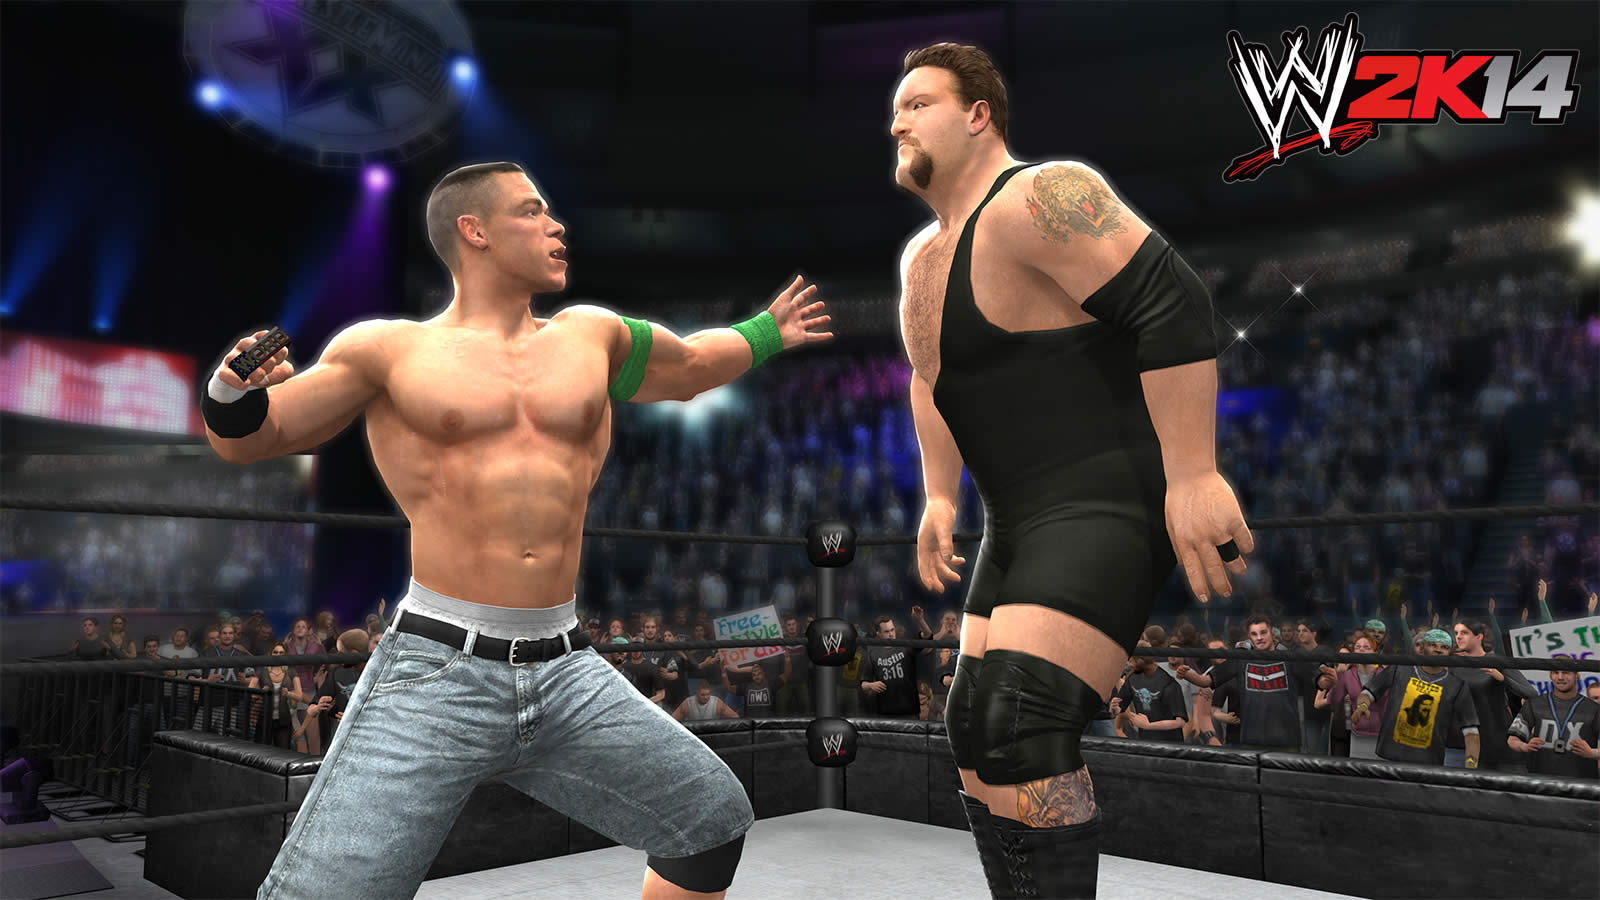 """[IMAGES] WWE 2K14: 30 Years Of Wrestlemania """"Ruthless ..."""